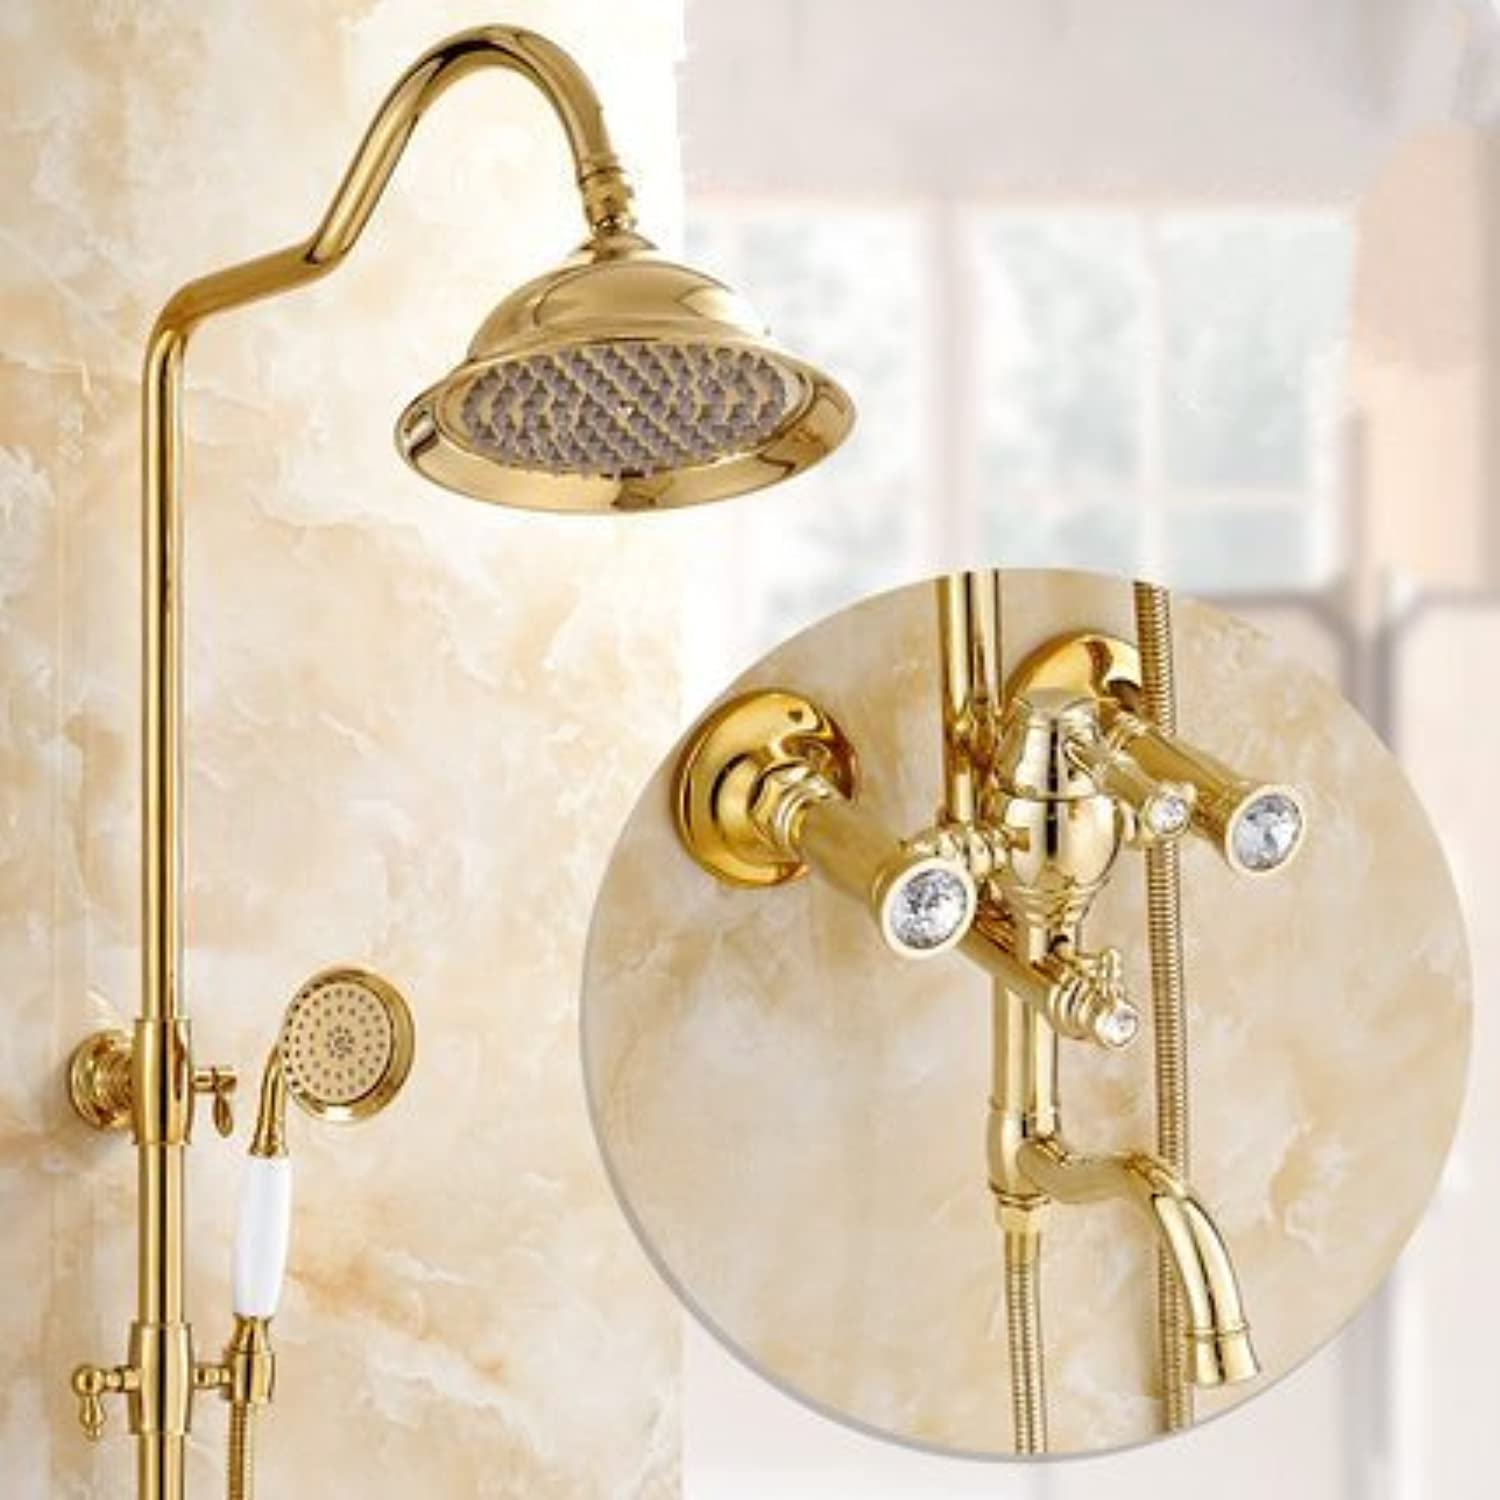 Zxy-Shower of European gold All Nozzles at A Constant Temperature of Copper Heat Cold Shower Shower Shower